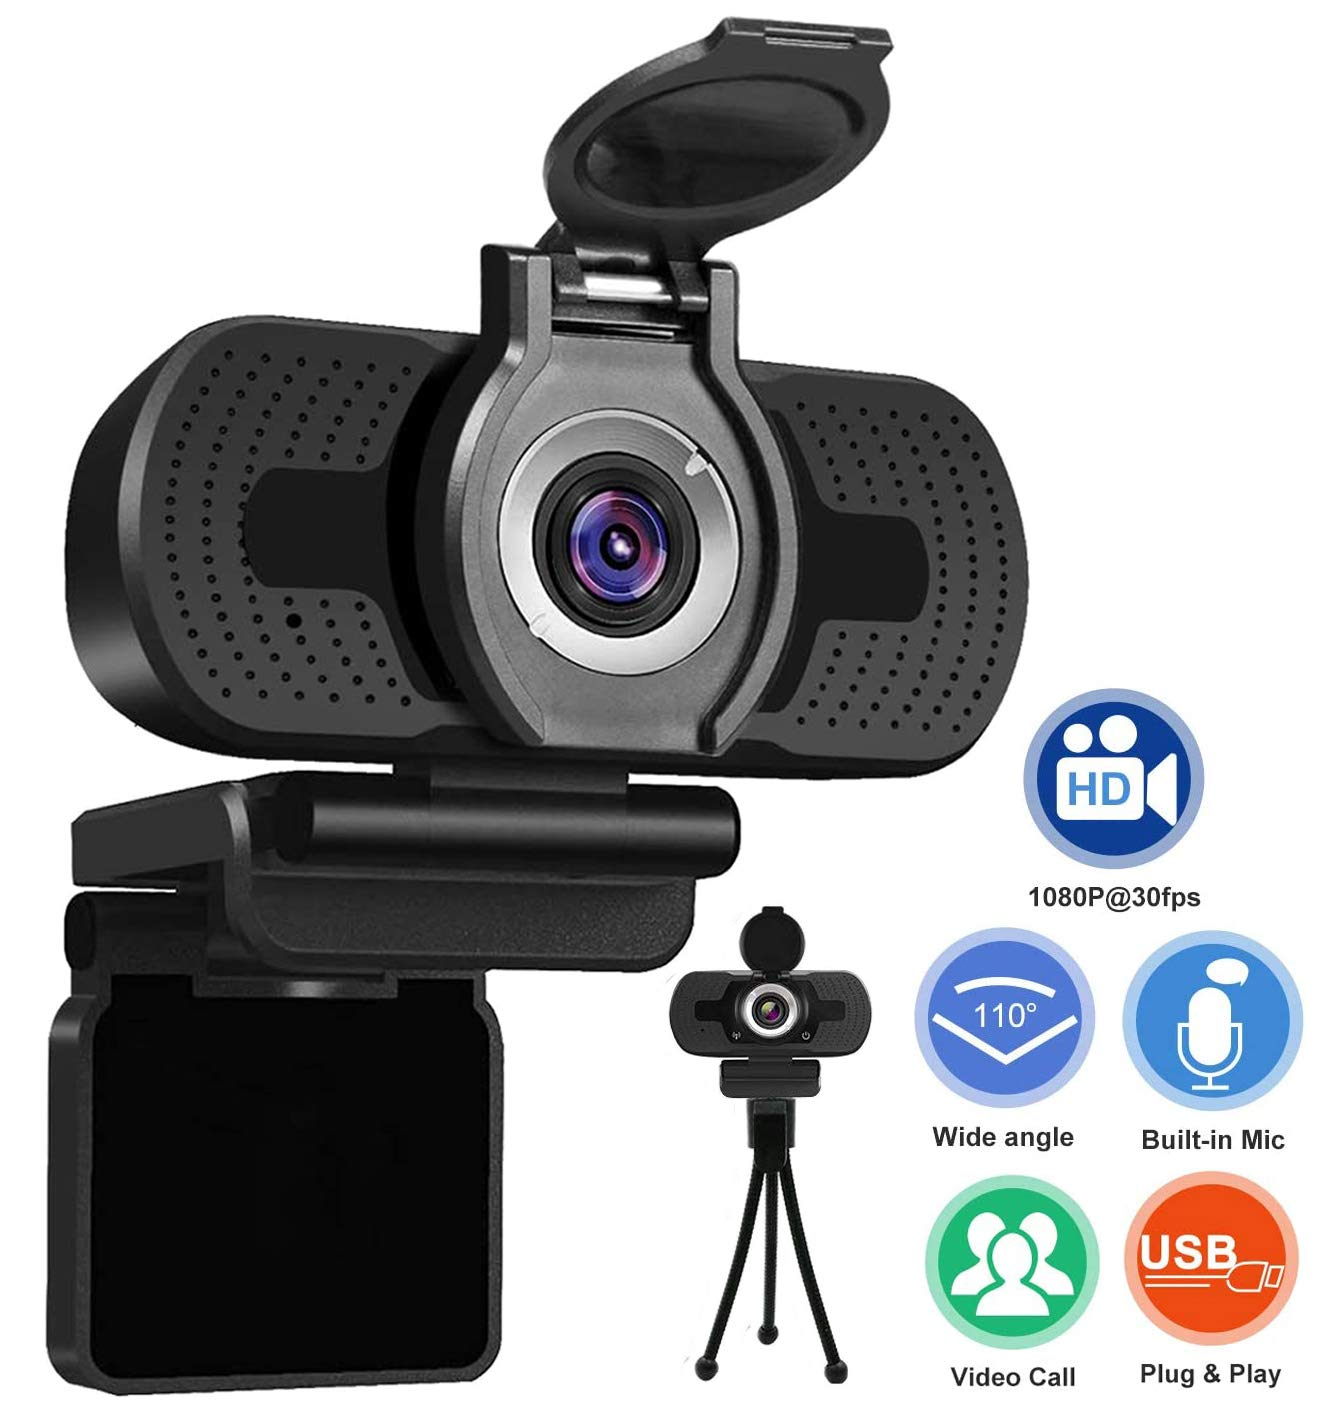 Xinidc Full 1080P HD Webcam Built-in Microphone Camera USB Webcam for Laptops and Desktop External Wired Live Streaming Web Camera with Privacy Cover and Tripod for Skype You Tube